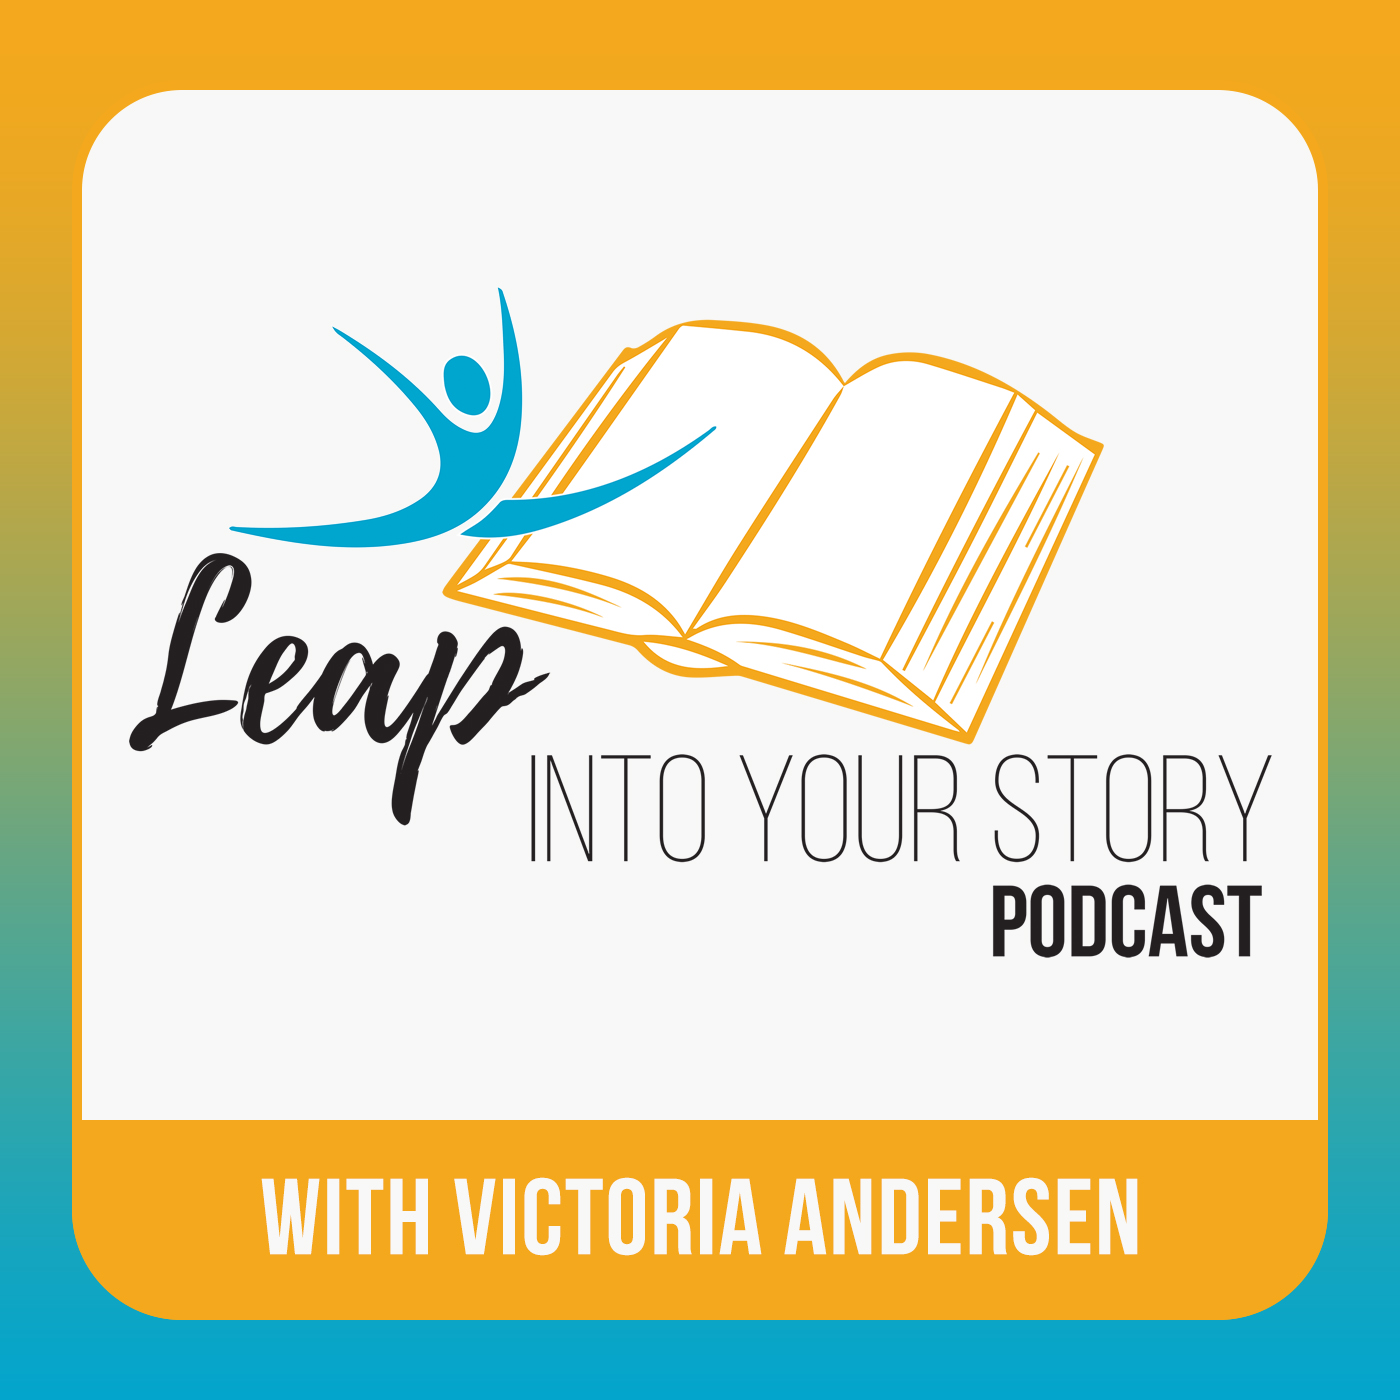 The Leap Into Your Story Podcast with Victoria Andersen